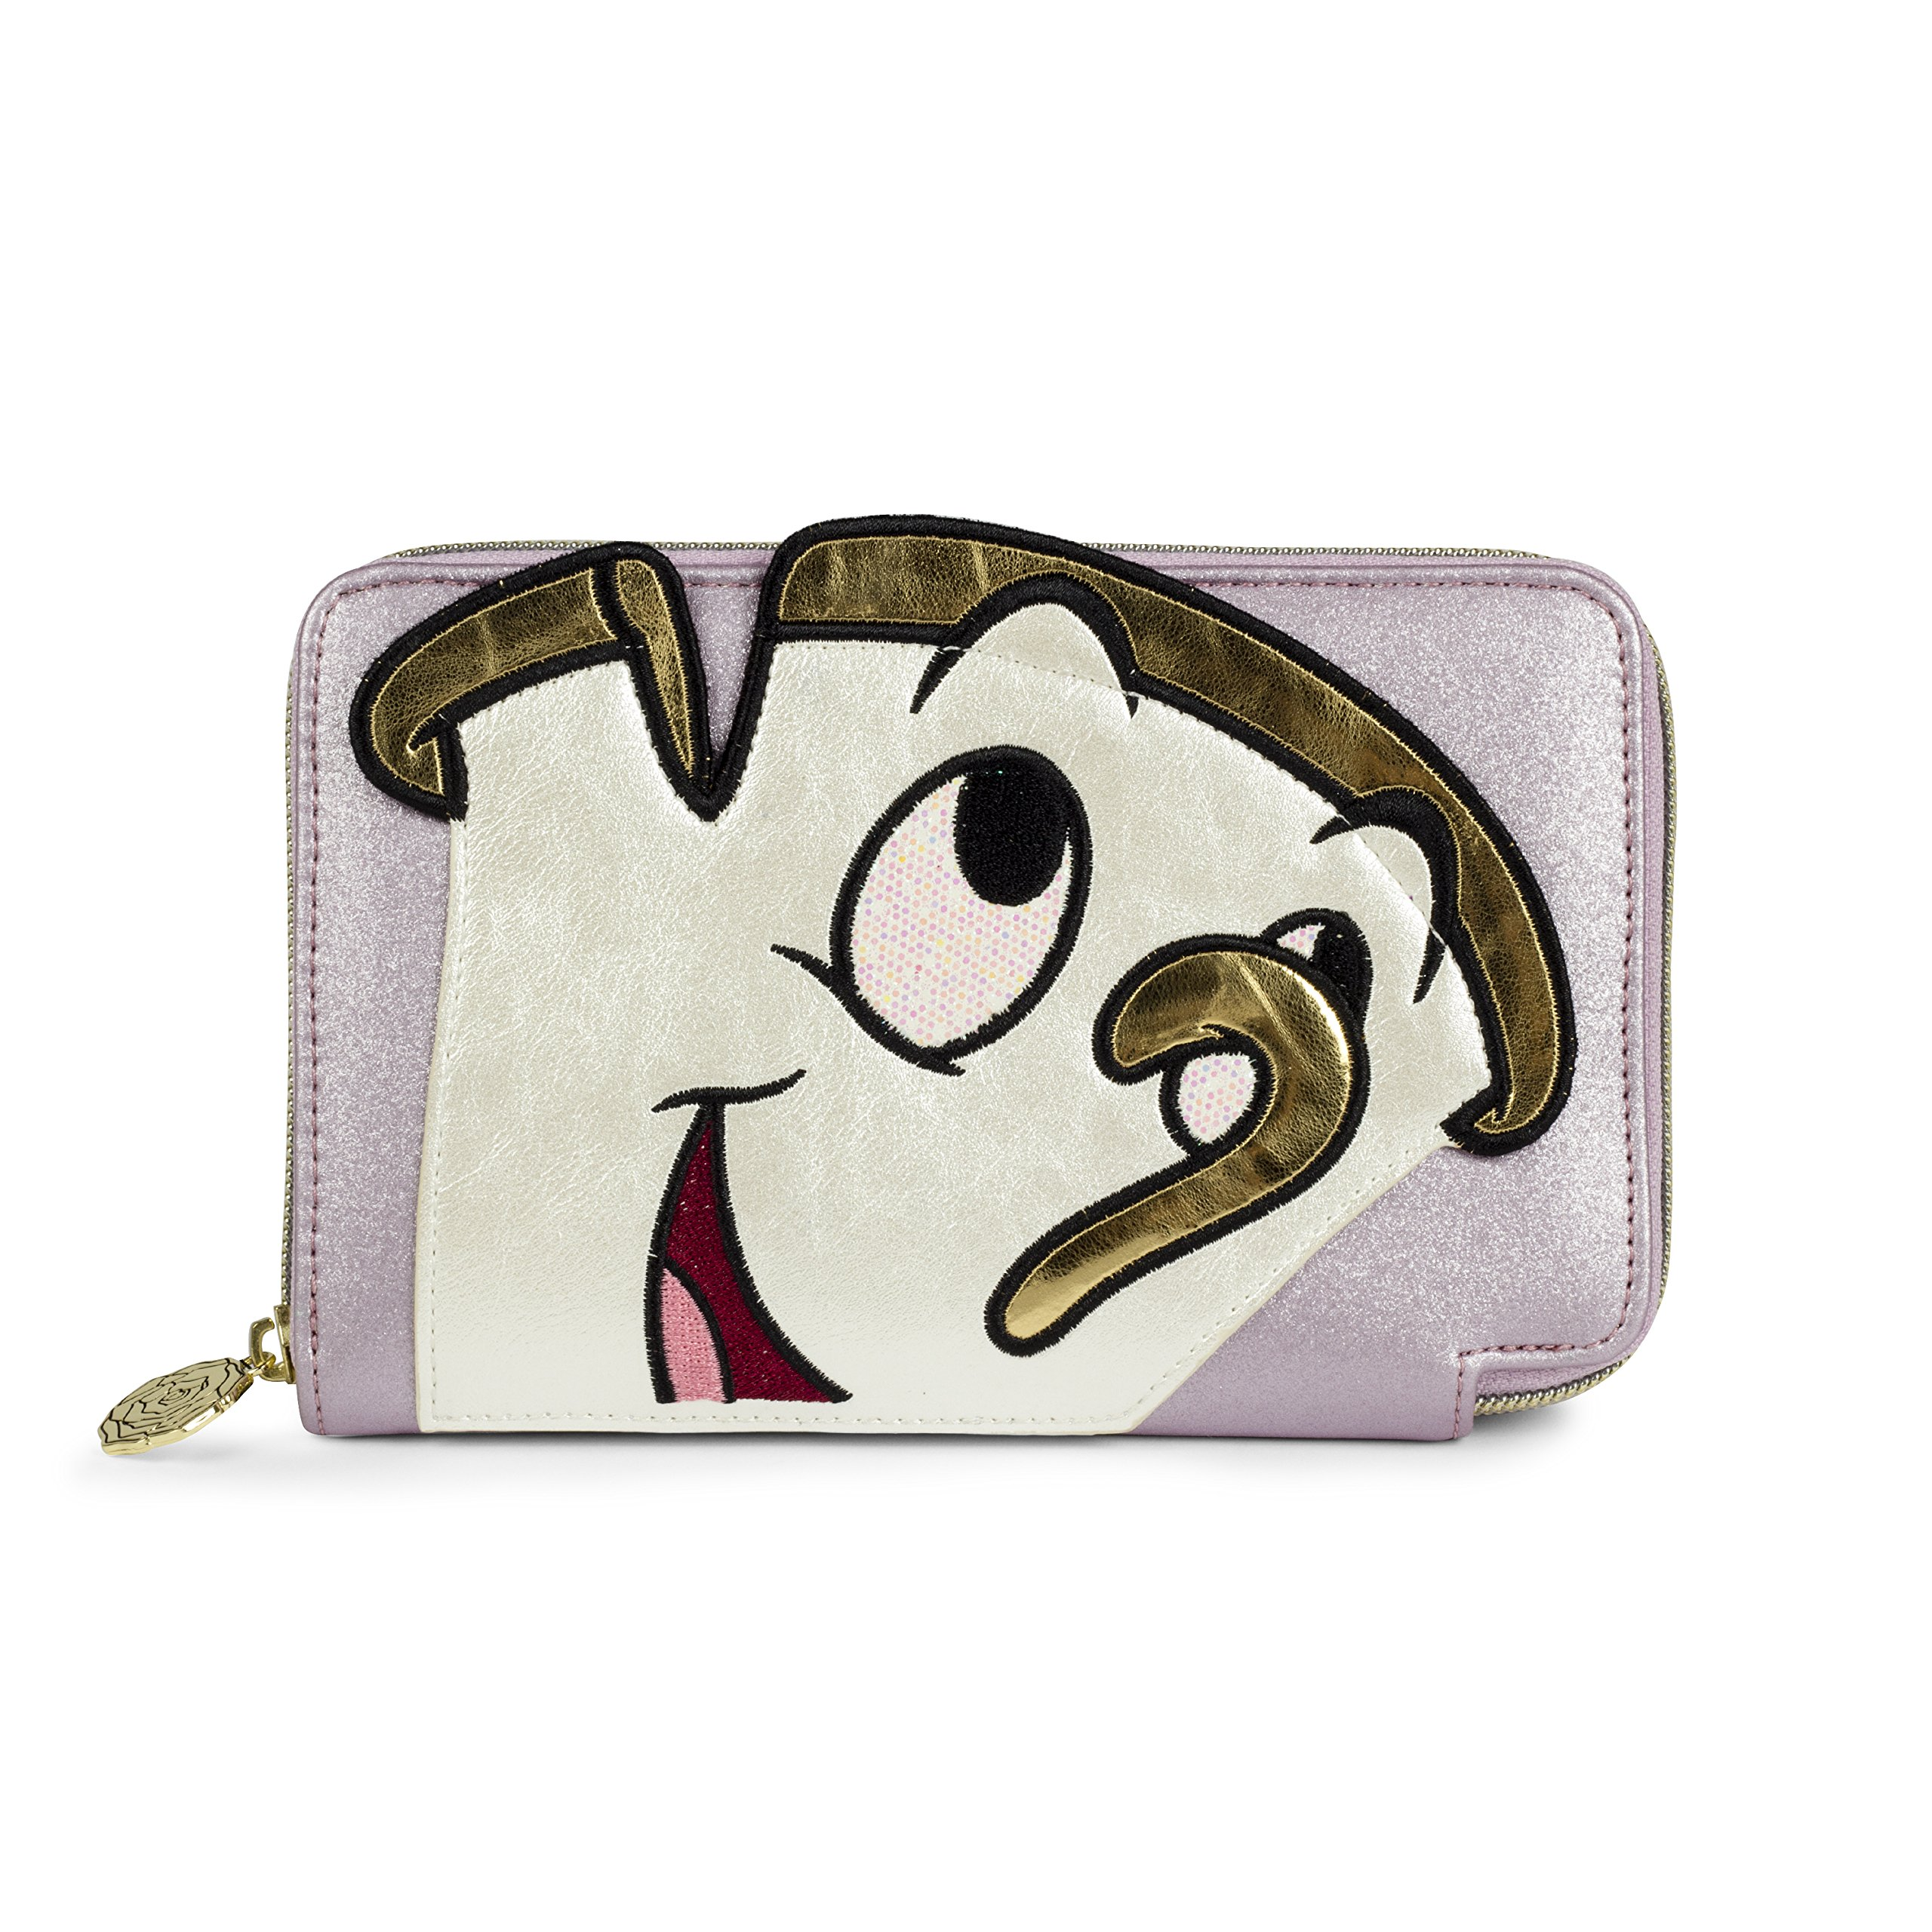 Danielle Nicole Disney Chip Wallet